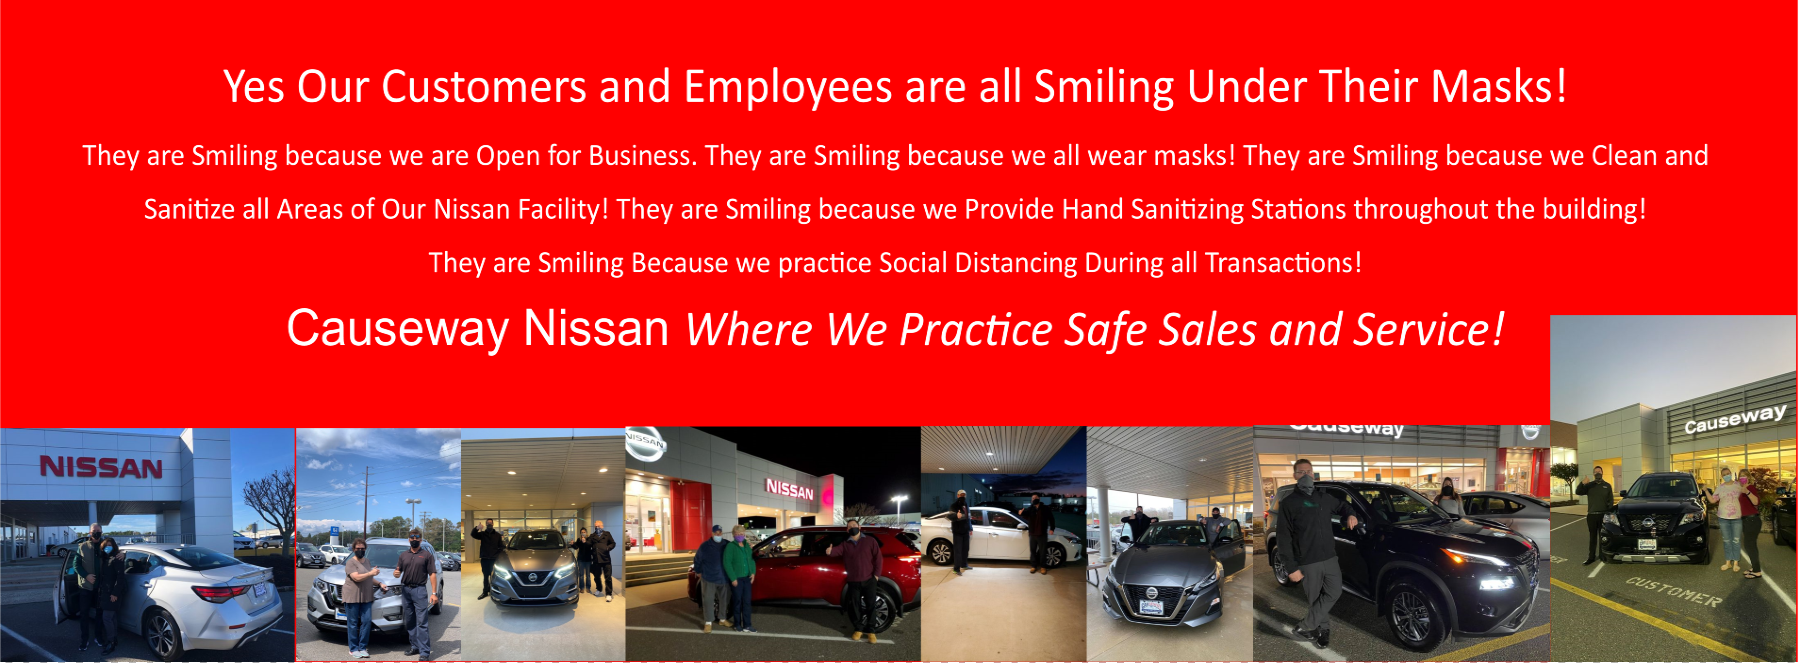 covid banner nissan smiling